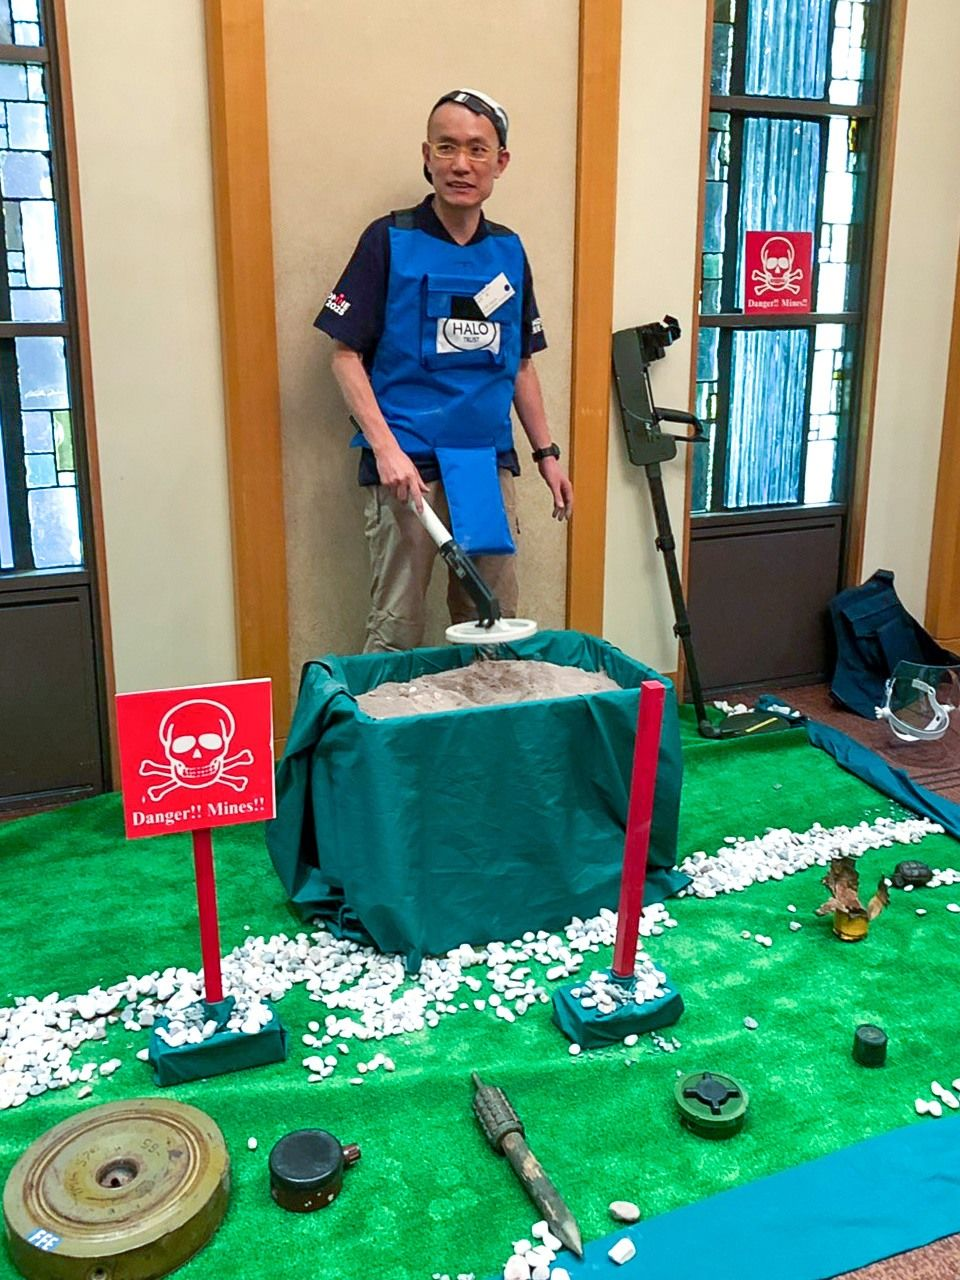 The June 11 event featured a display of antipersonnel mines and a mock demining line.